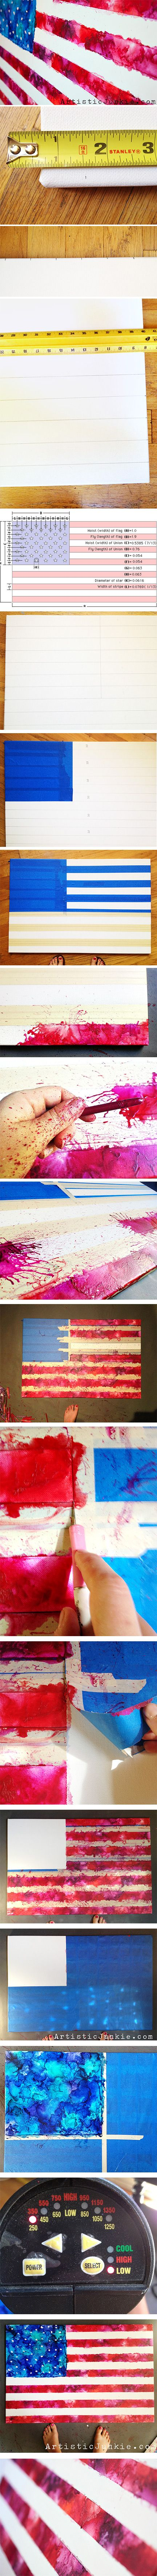 Melted Crayon American Flag, by far the coolest melted crayon project I've seen!